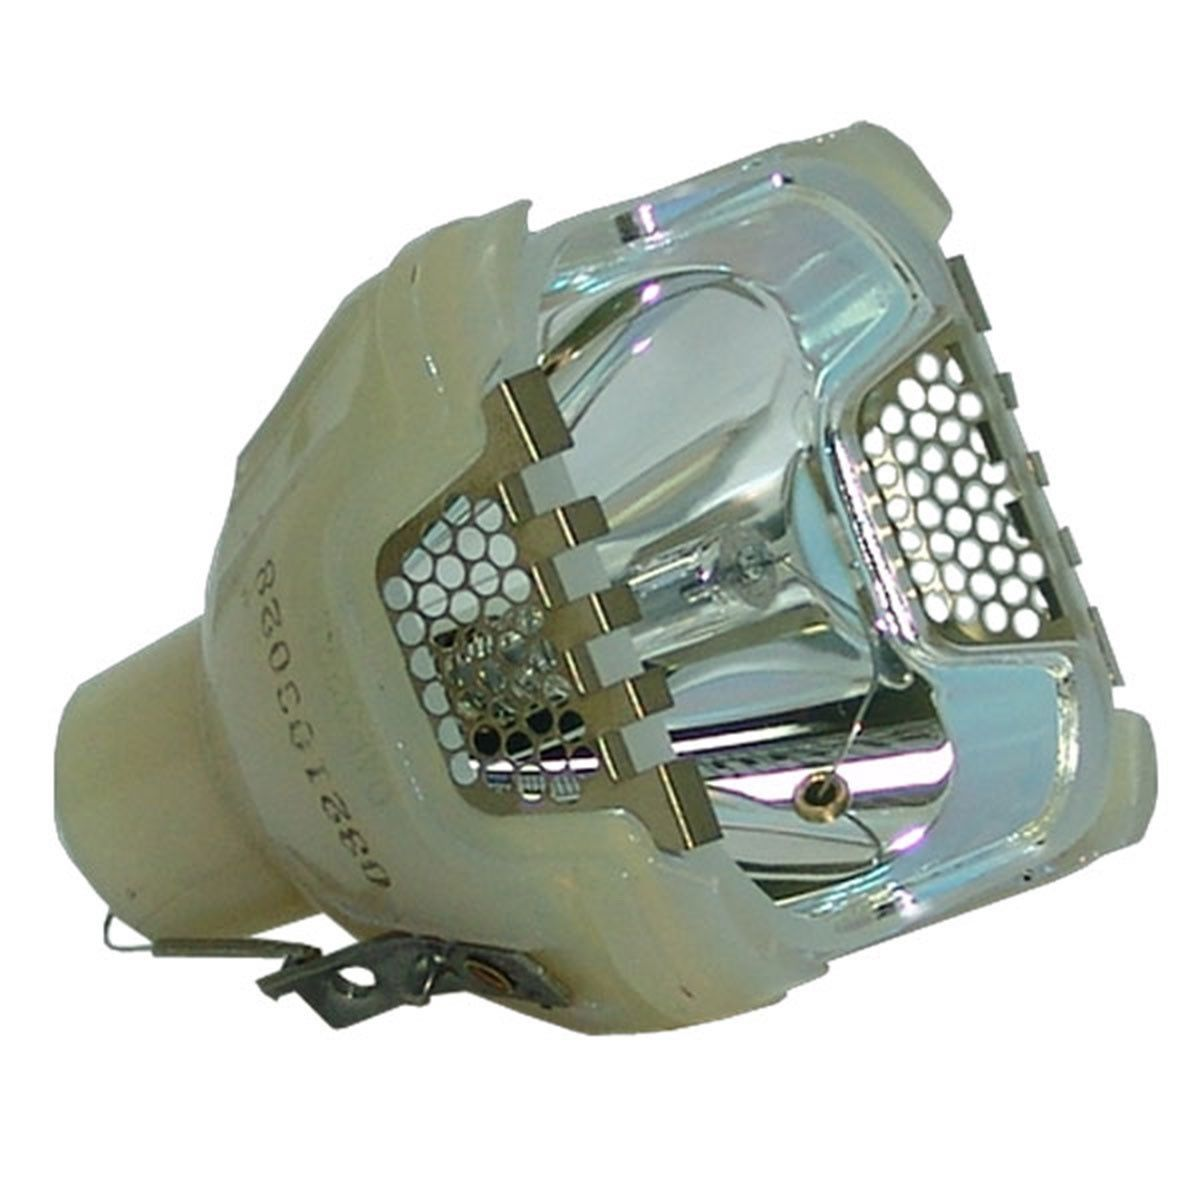 Compatible Bare Bulb LV-LP18 9268A001 for Canon LV-7210 LV-7215 LV-7220 LV7225 LV-7230 LV-7215E Projector Lamp Bulb with housing речь 978 5 9268 1320 0